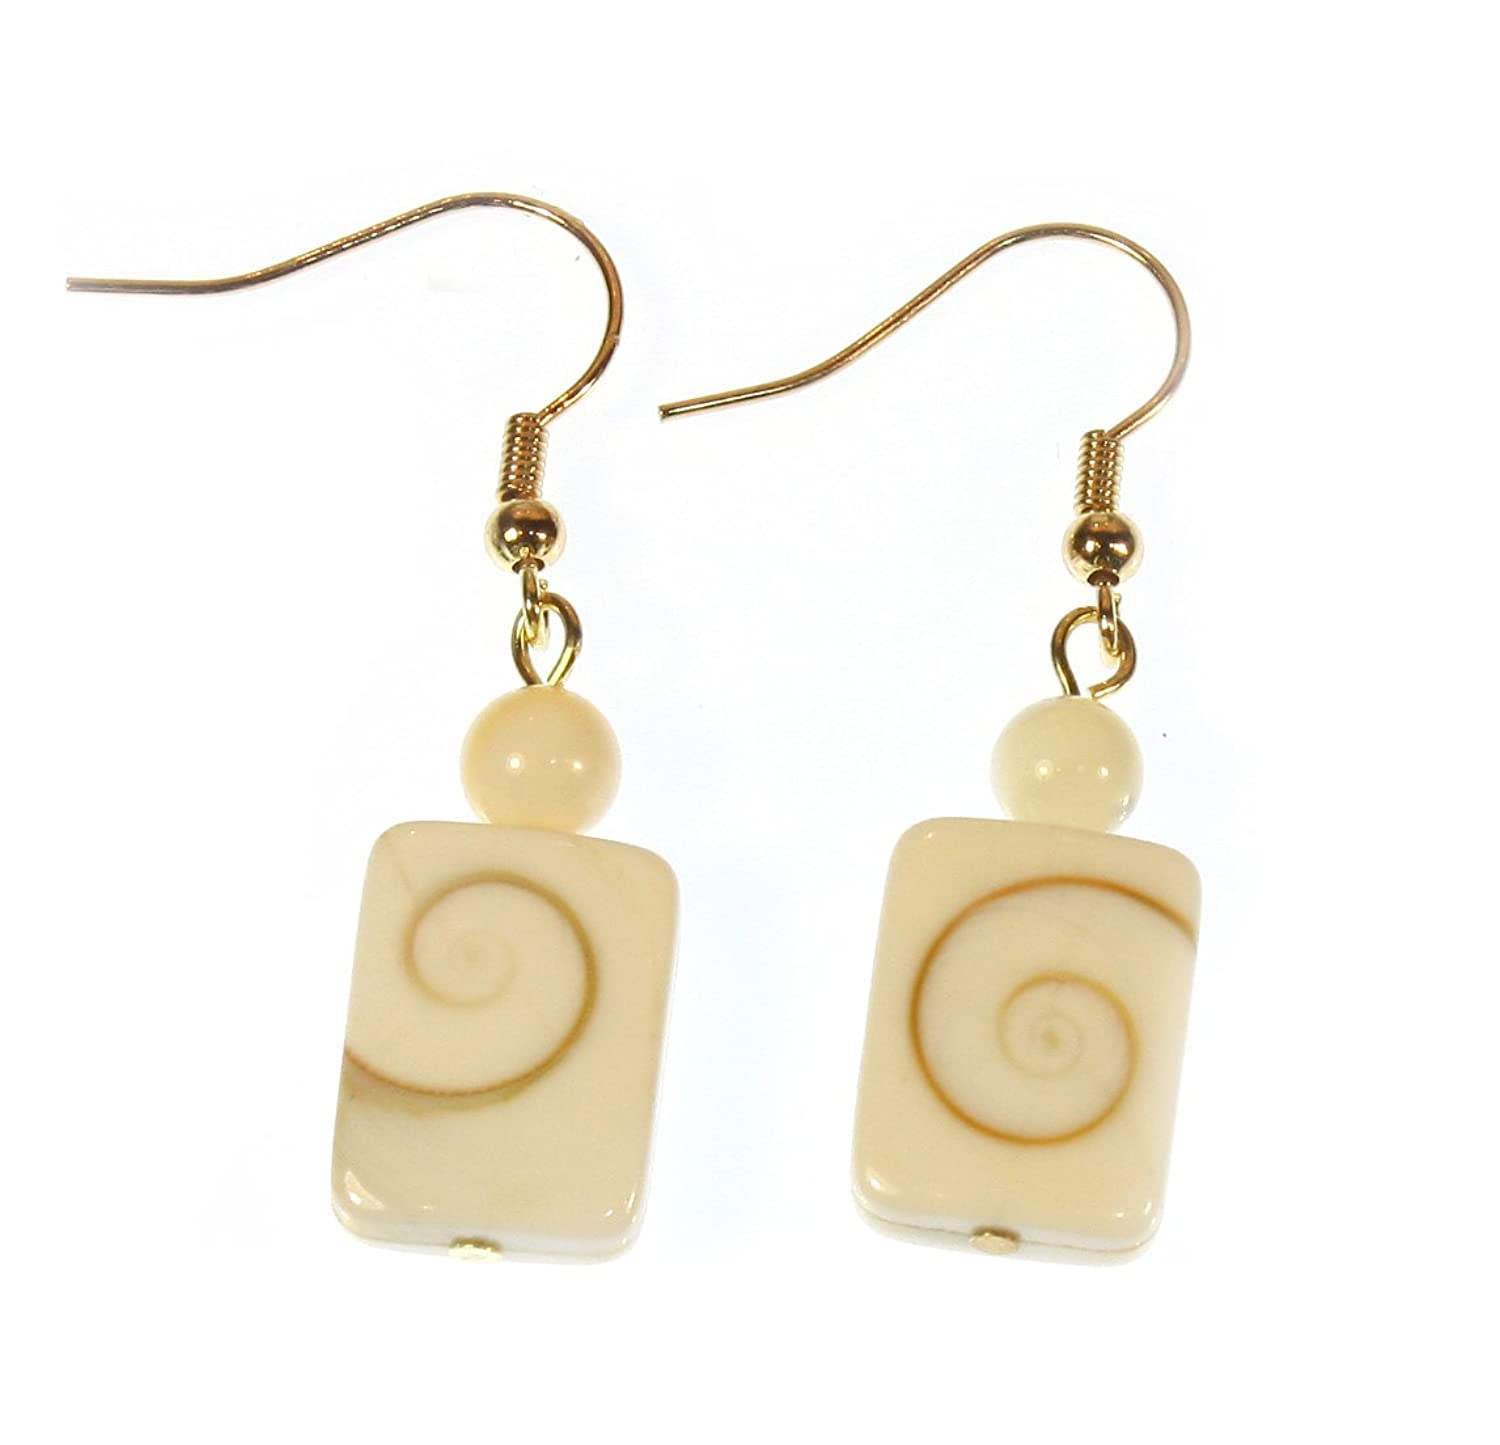 """""""Never Ending"""" Spiral in a Shell Earrings, Dangle 1.5 Inches"""